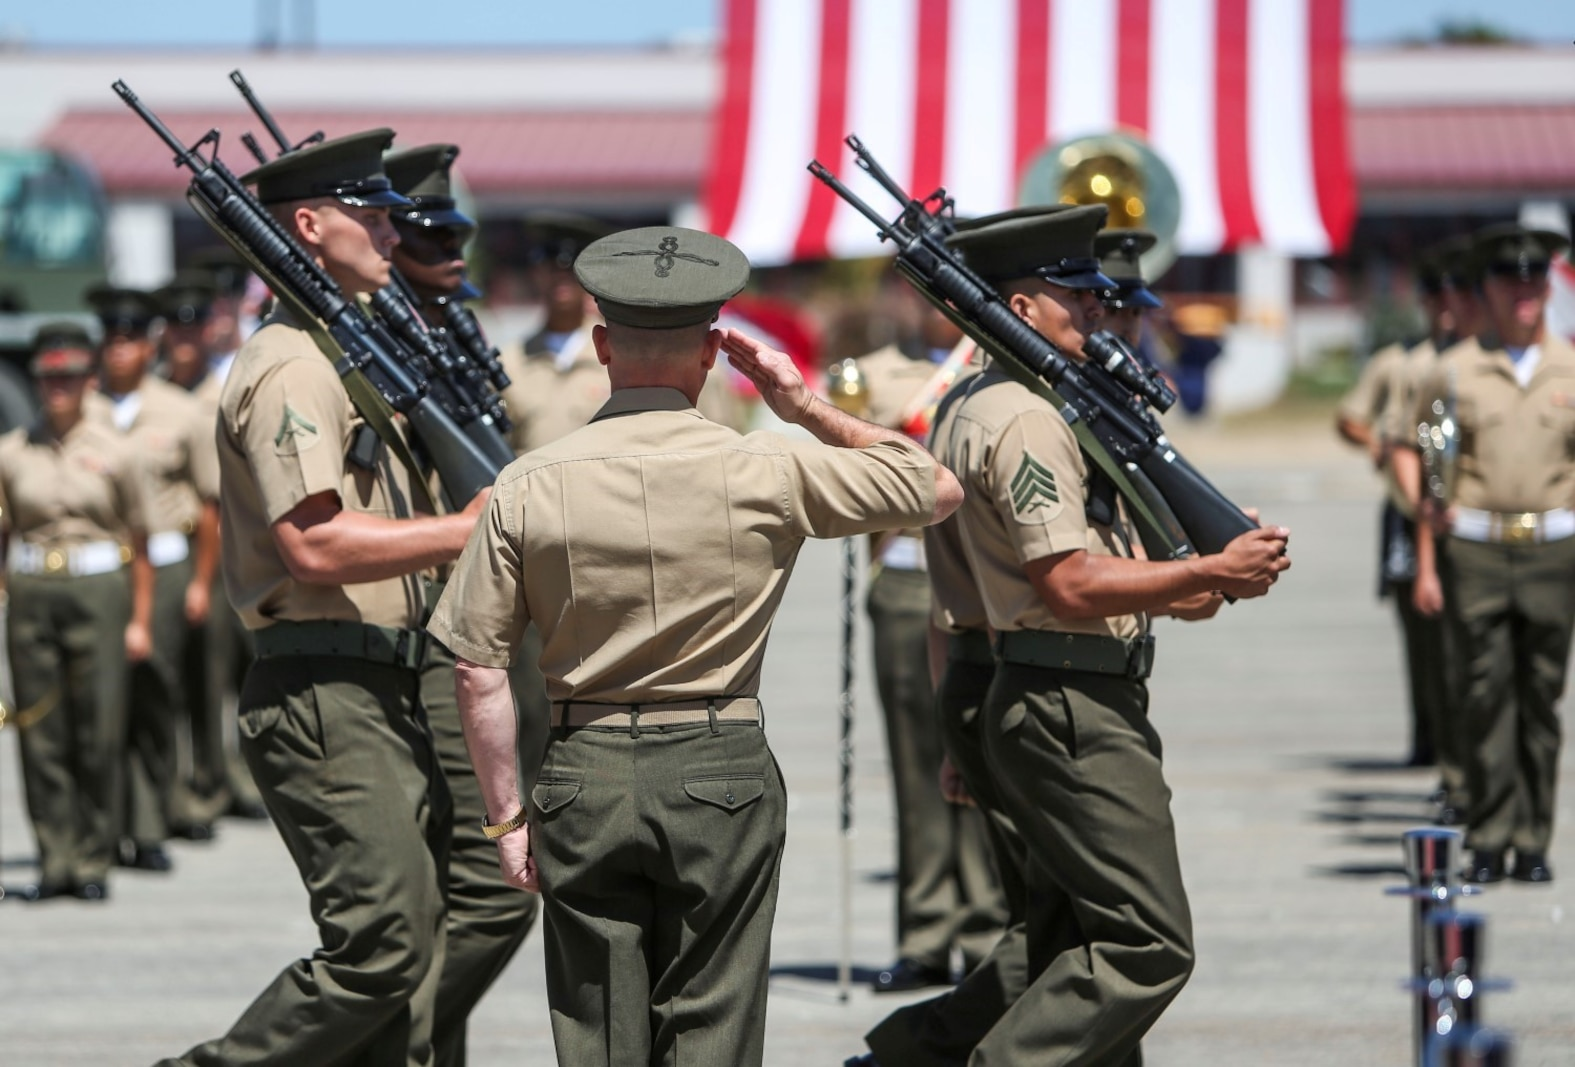 Brigadier Gen. Joaquin F. Malavet, the commanding general of 1st Marine Expeditionary Brigade, inspects Marines passing in review during the 1st MEB change of command ceremony aboard Camp Pendleton, Calif., Aug. 29, 2014. Malavet was previously assigned as the principal director, South and Southeast Asia for the Office of the Secretary of Defense-Policy at Washington, D.C. (U.S. Marine Corps photo by Lance Cpl. Carson Gramley)